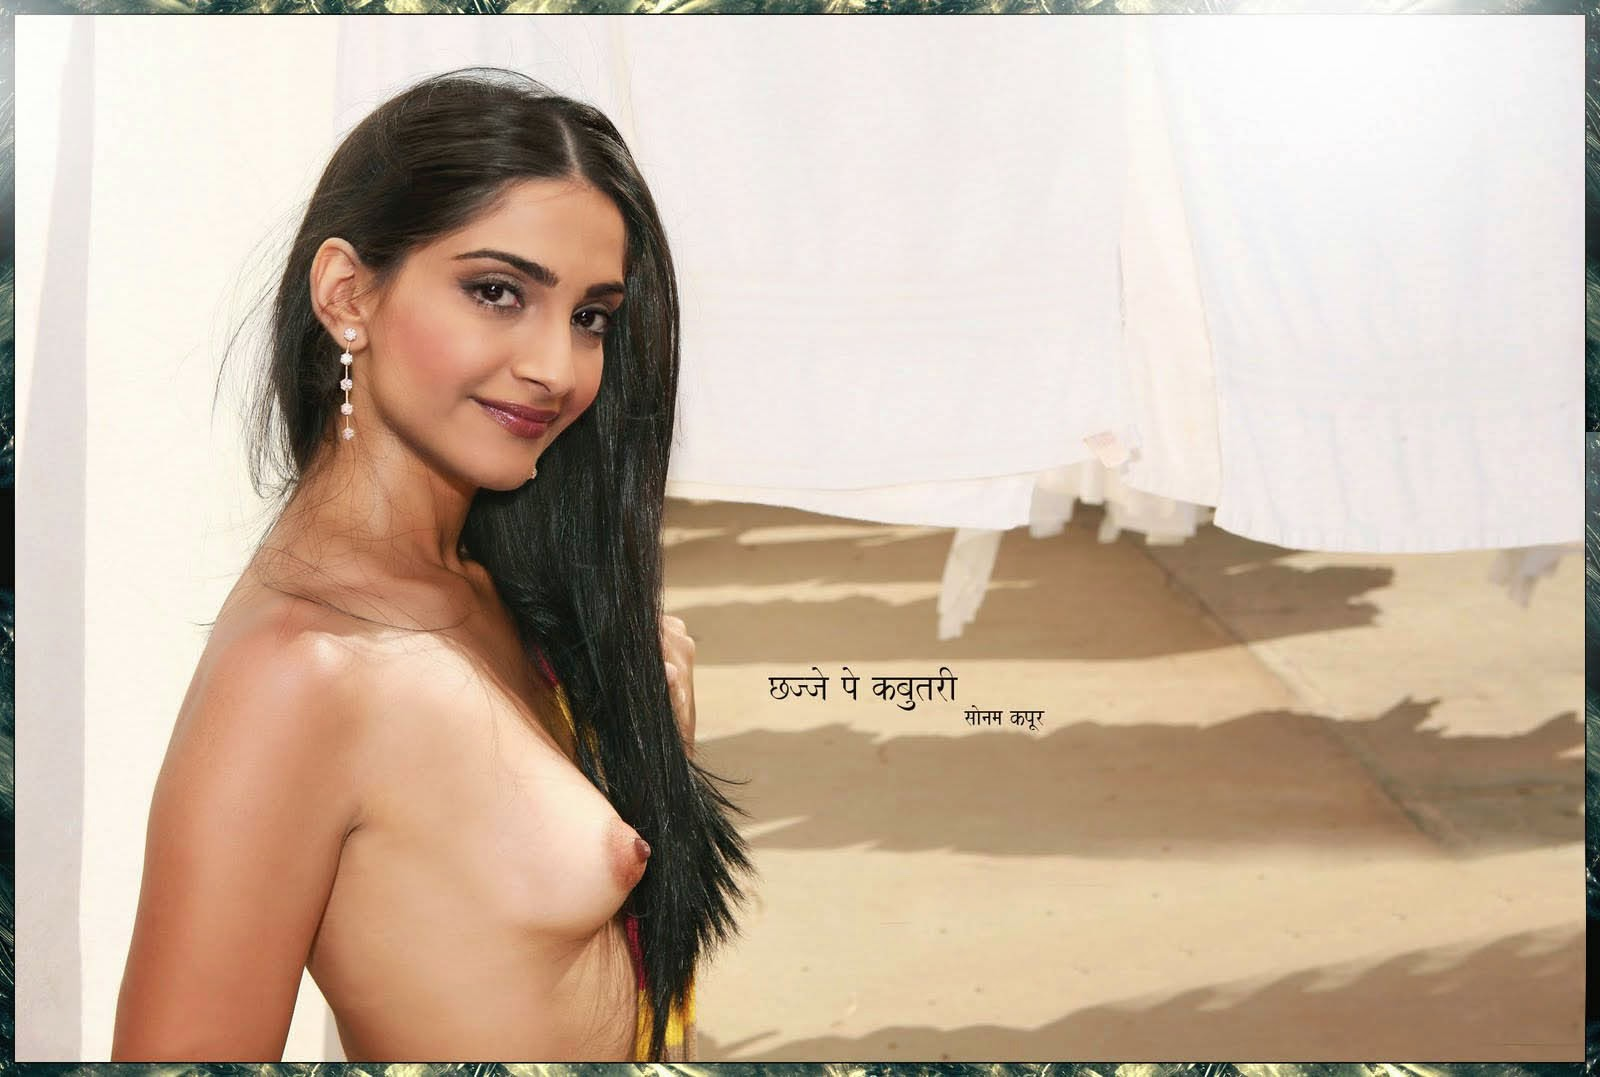 Sonam Kapoor Nude Bathing At Bathtub Showing Boobs And Pussy